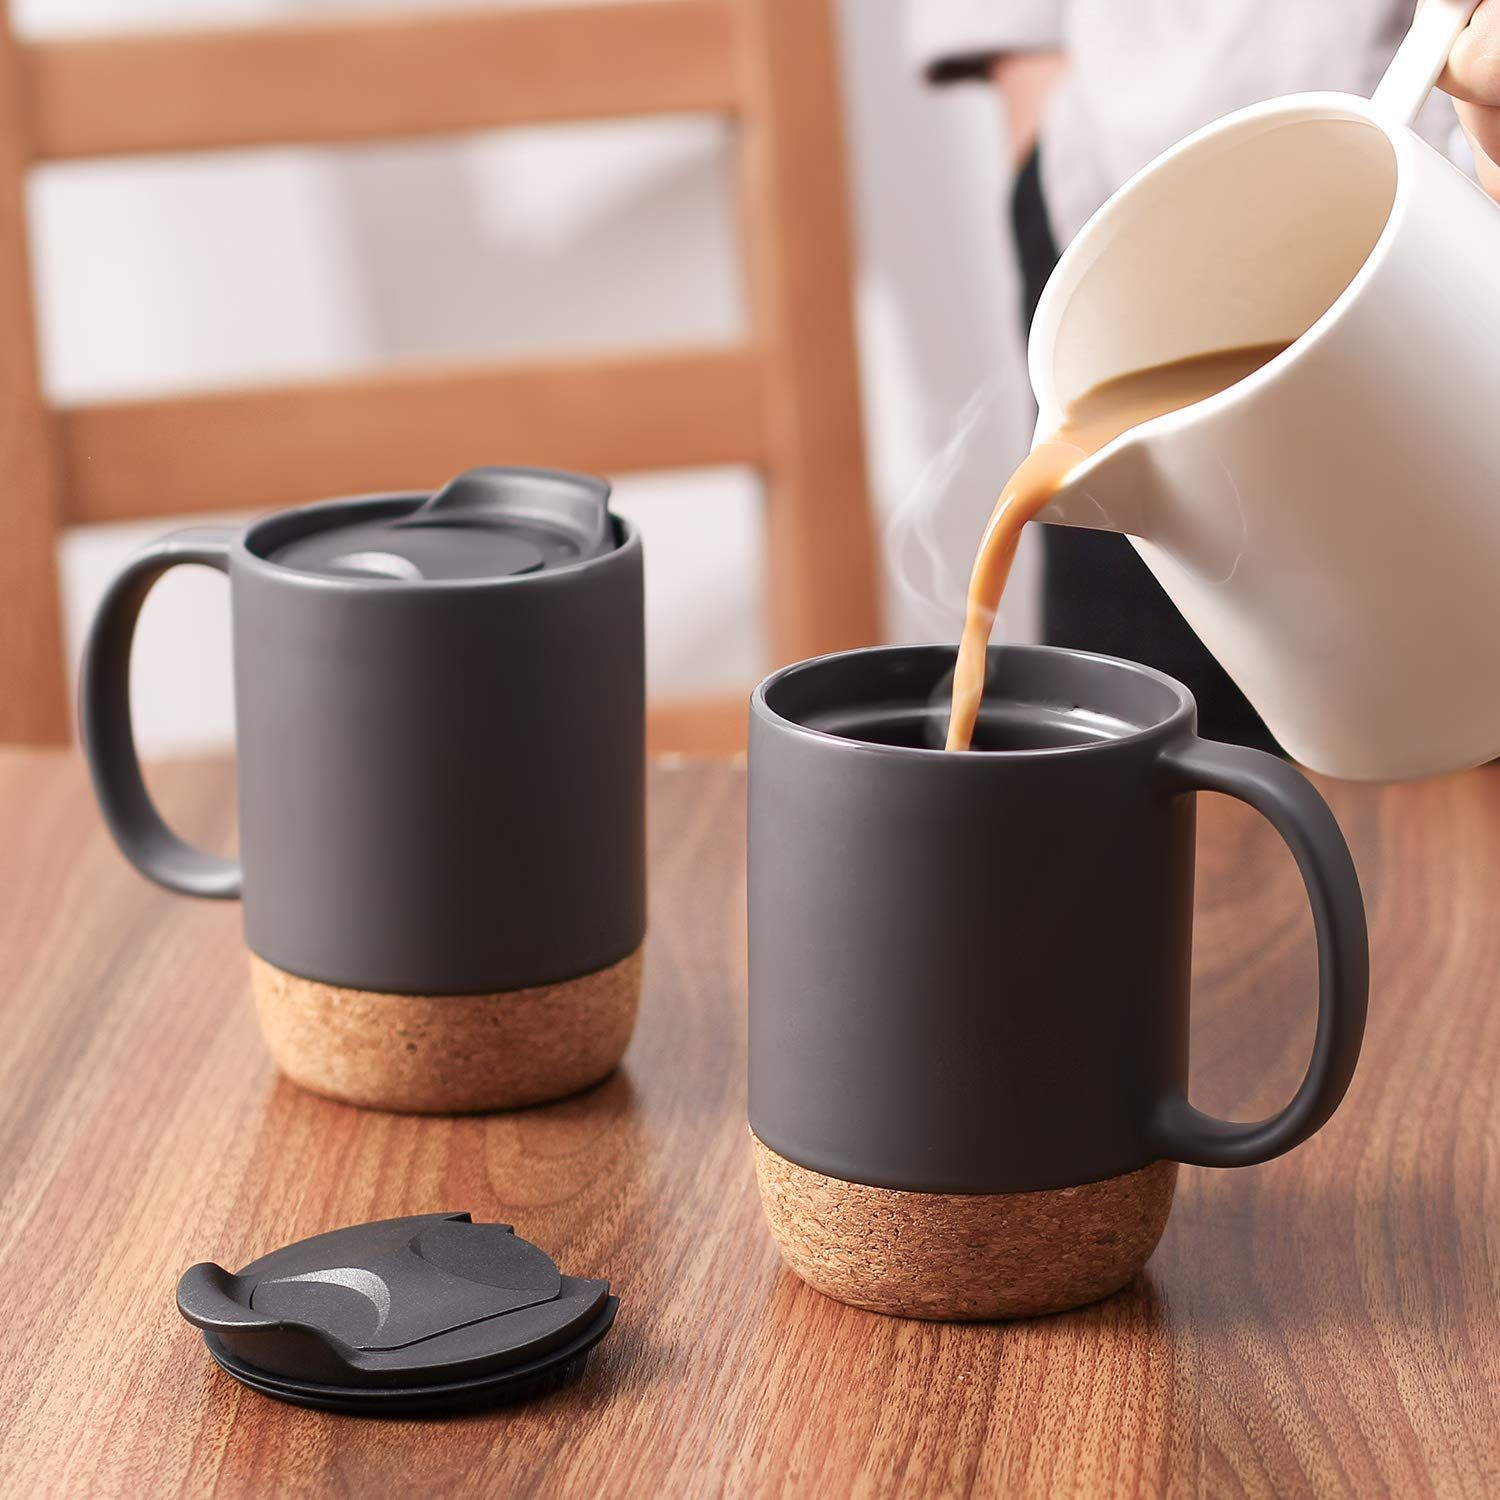 15 Oz Coffee Mug Set: 2 Pcs Reusable 15 ounces large coffee mug ...